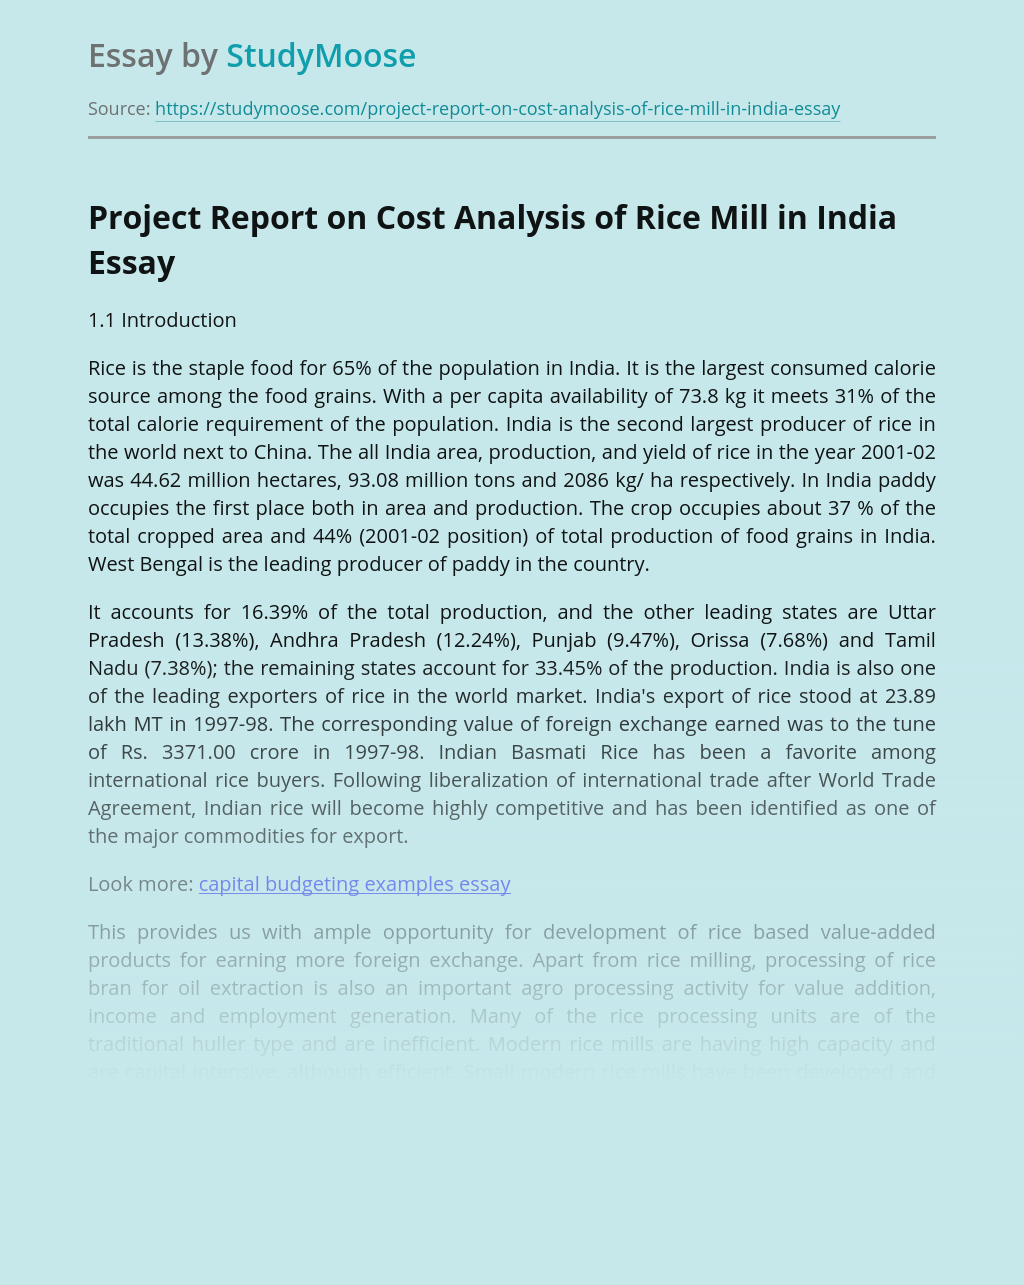 Project Report on Cost Analysis of Rice Mill in India